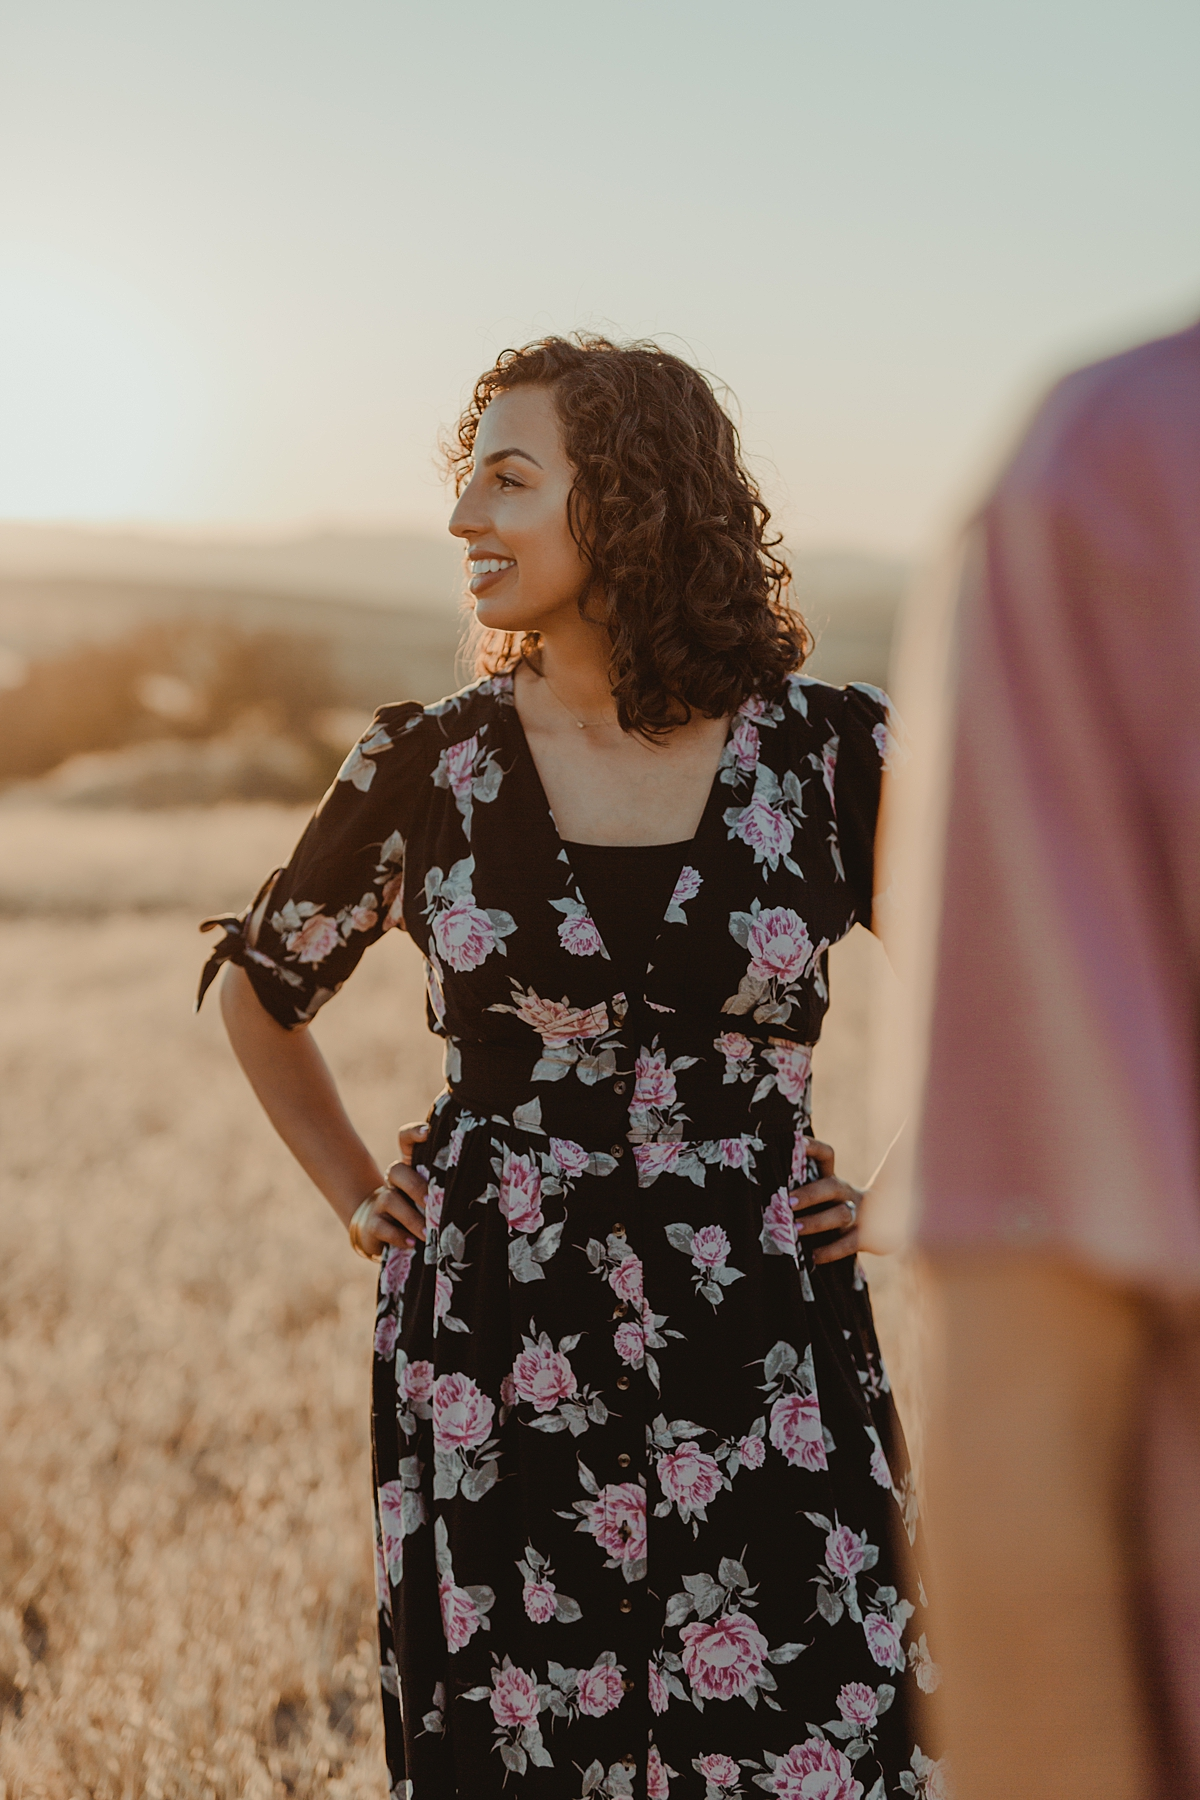 Orange County family photographer. candid photo of wife standing in fields with hands on hips and husband in edge of frame at Irvine Regional Park